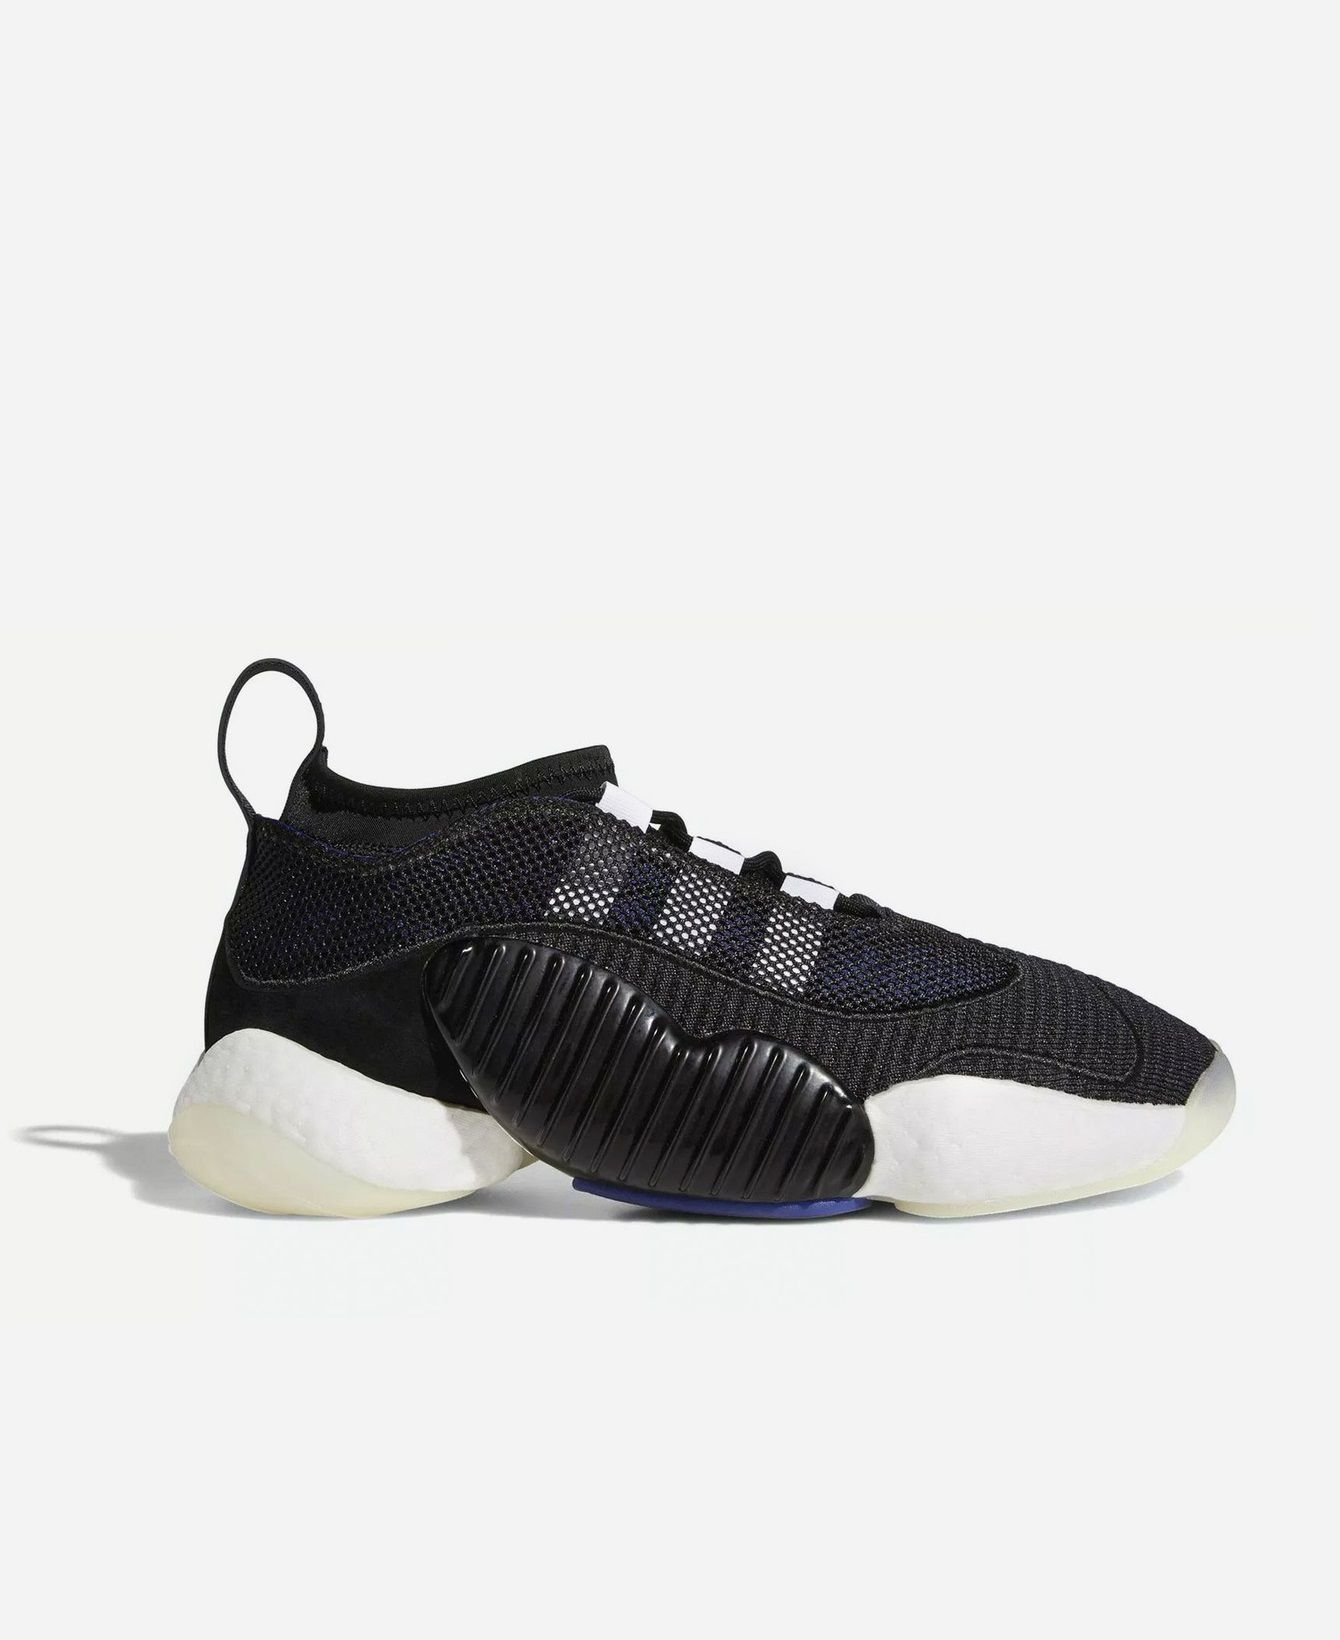 super popular c7029 1506c adidas Crazy BYW Lvl 2